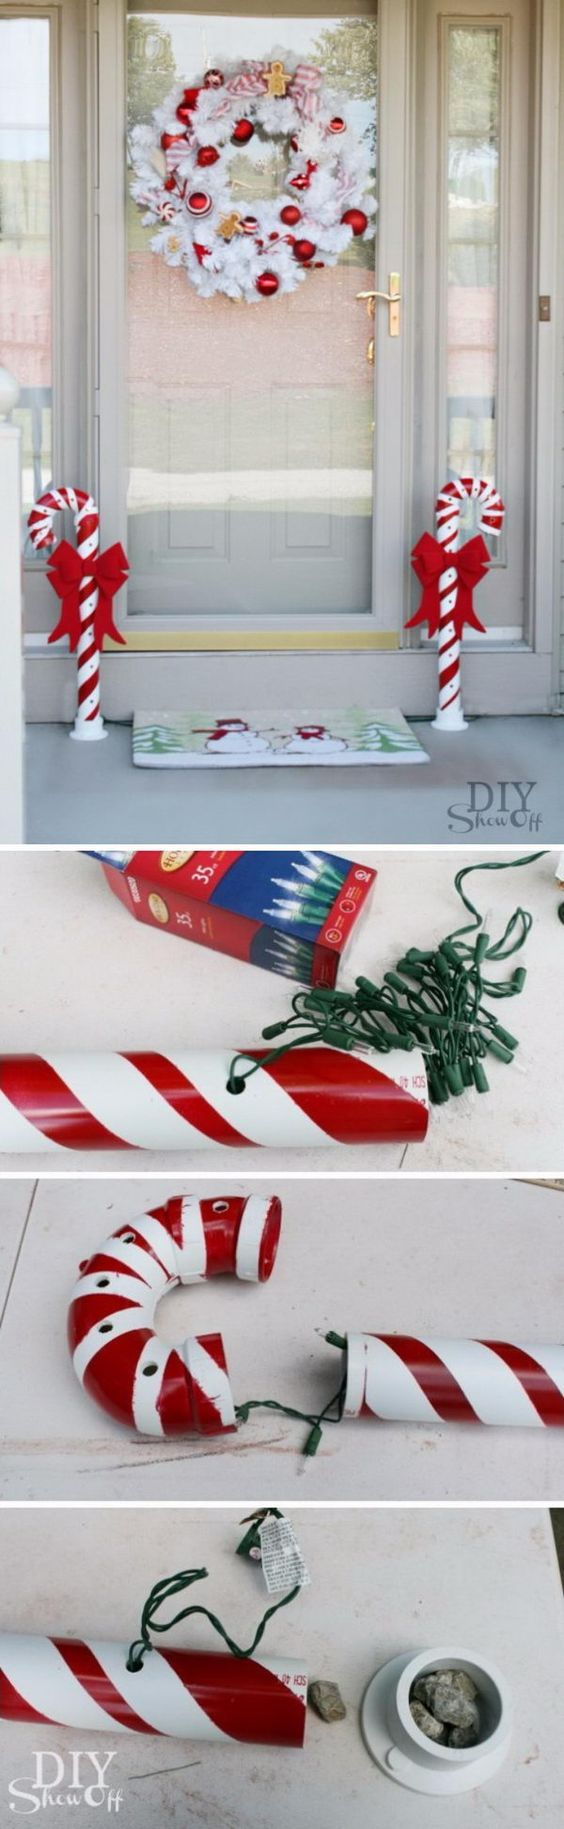 How to Make a Lighted PVC Candy